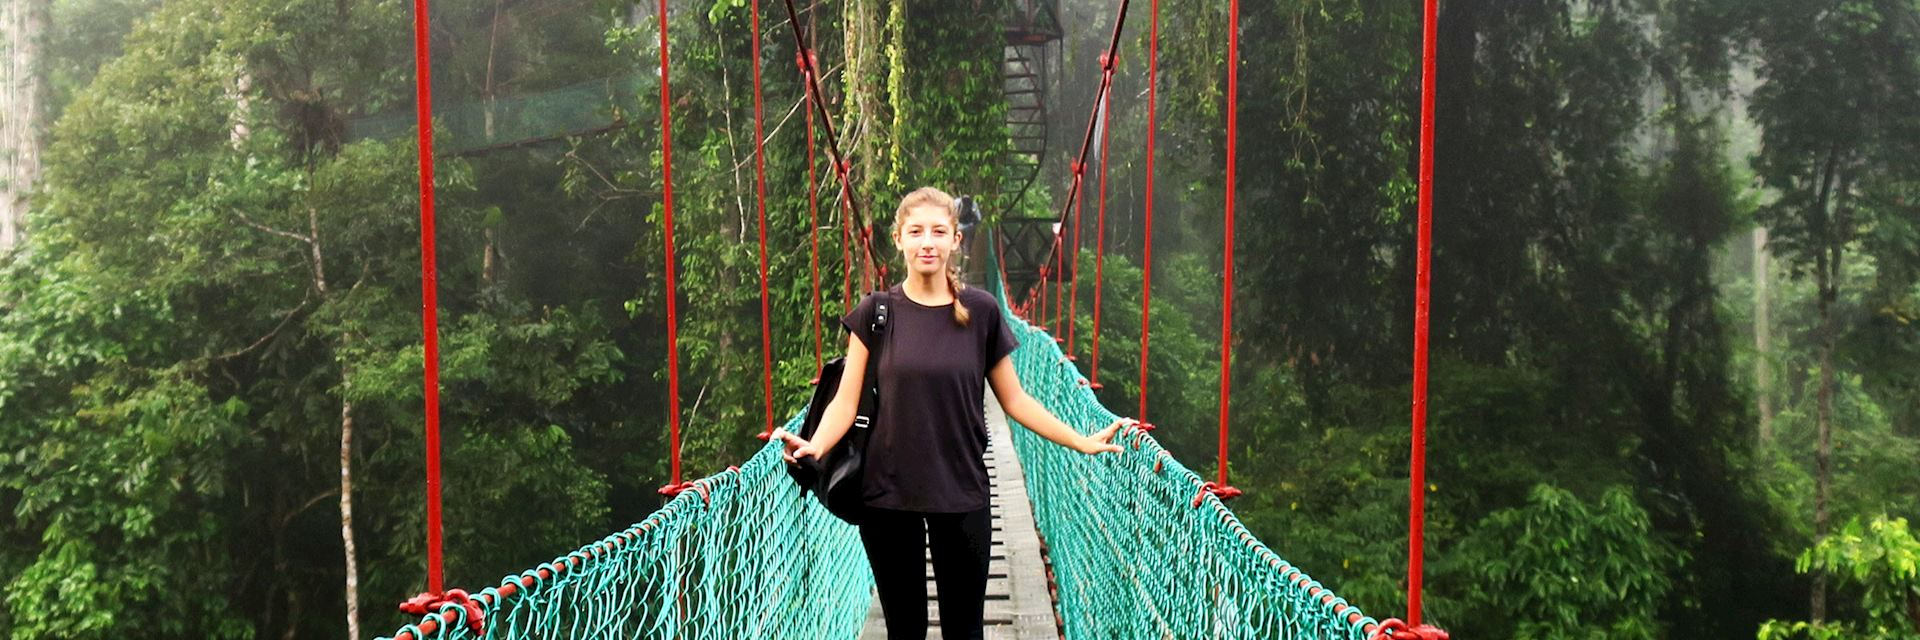 Jade visiting Danum Valley, Borneo